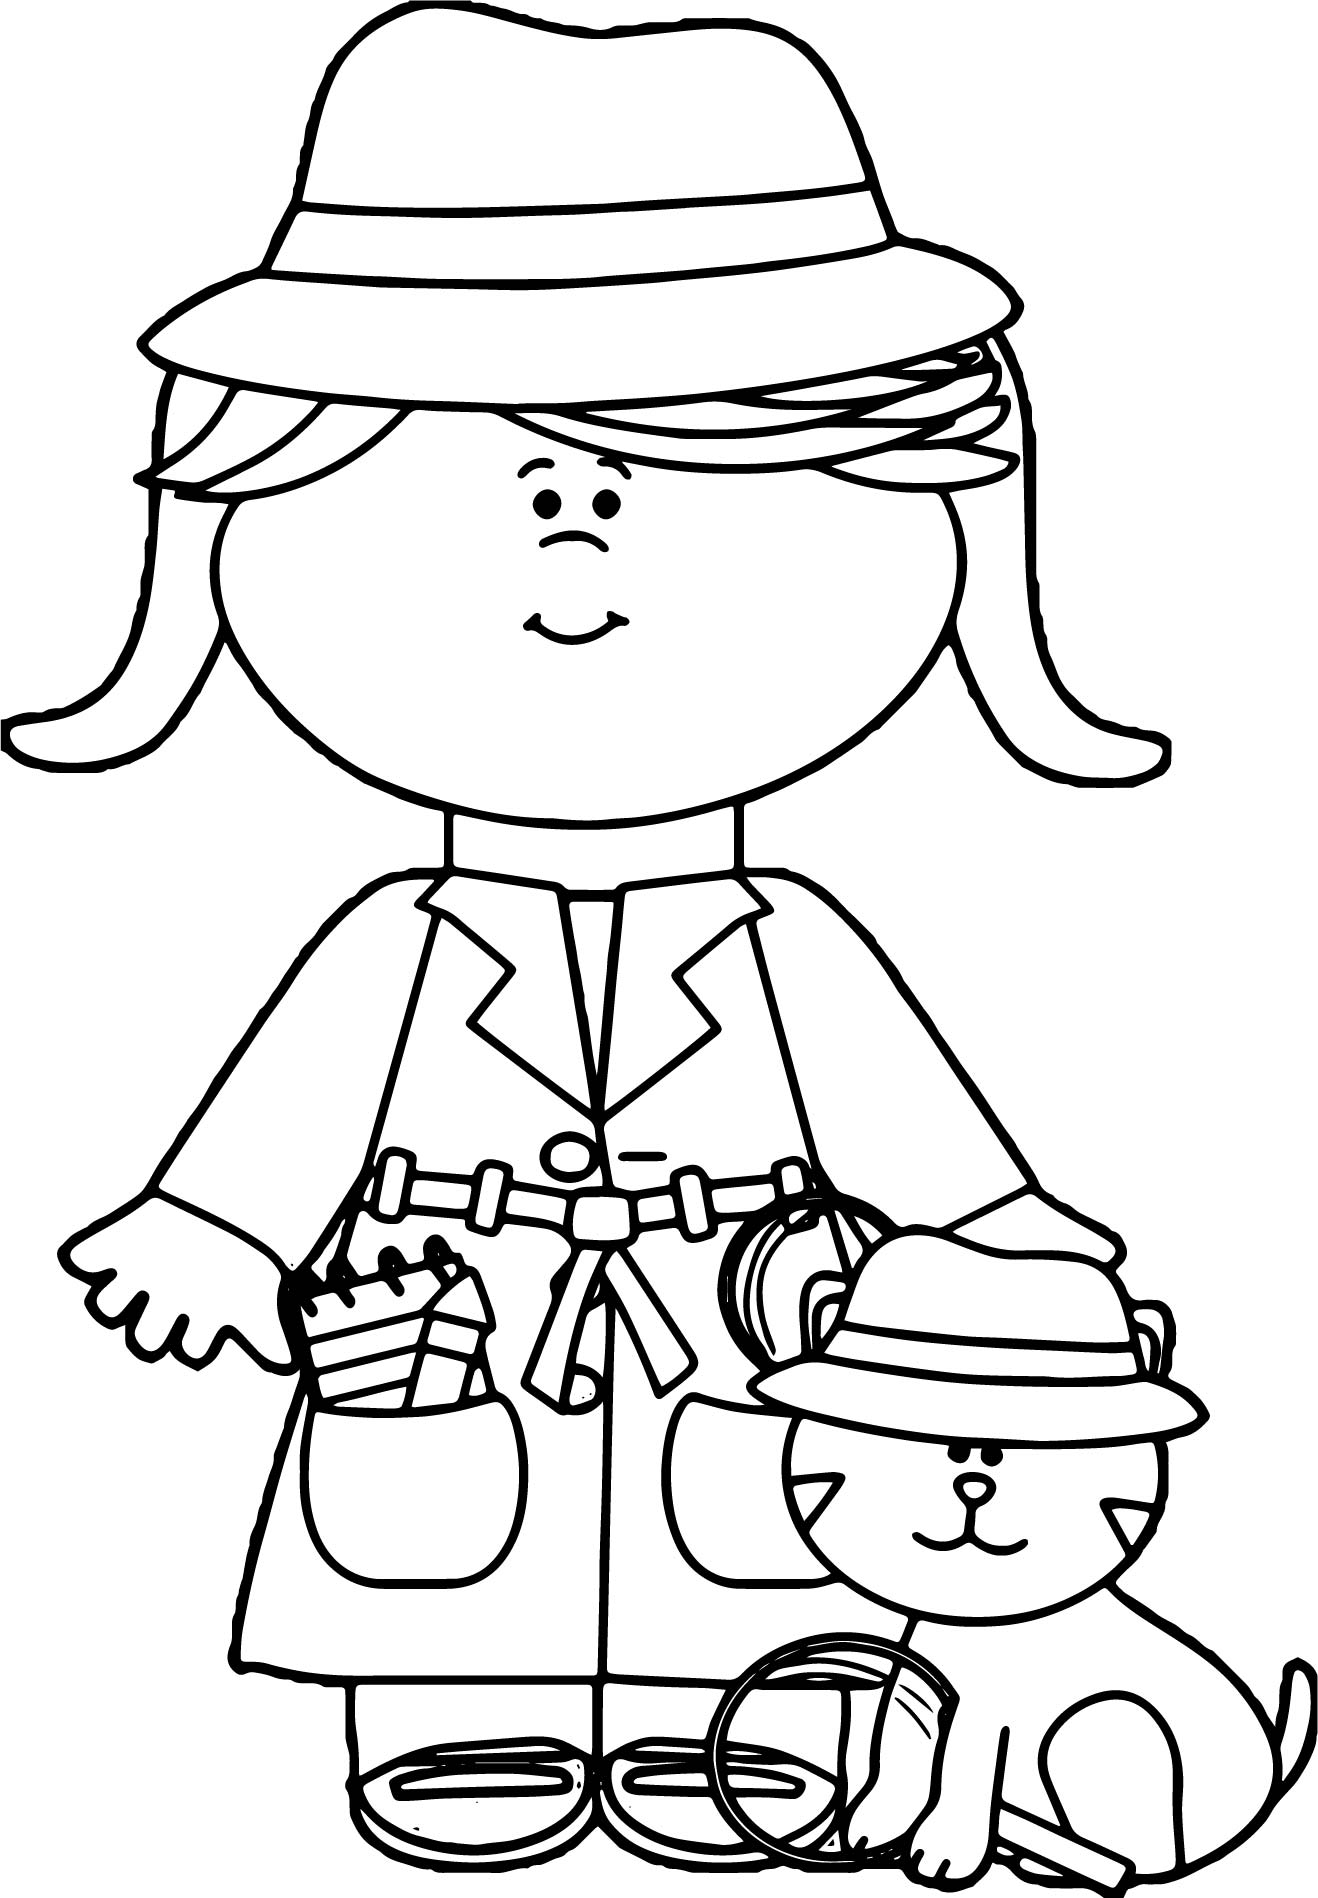 detective coloring pages little girl detective with cat coloring page coloring pages detective